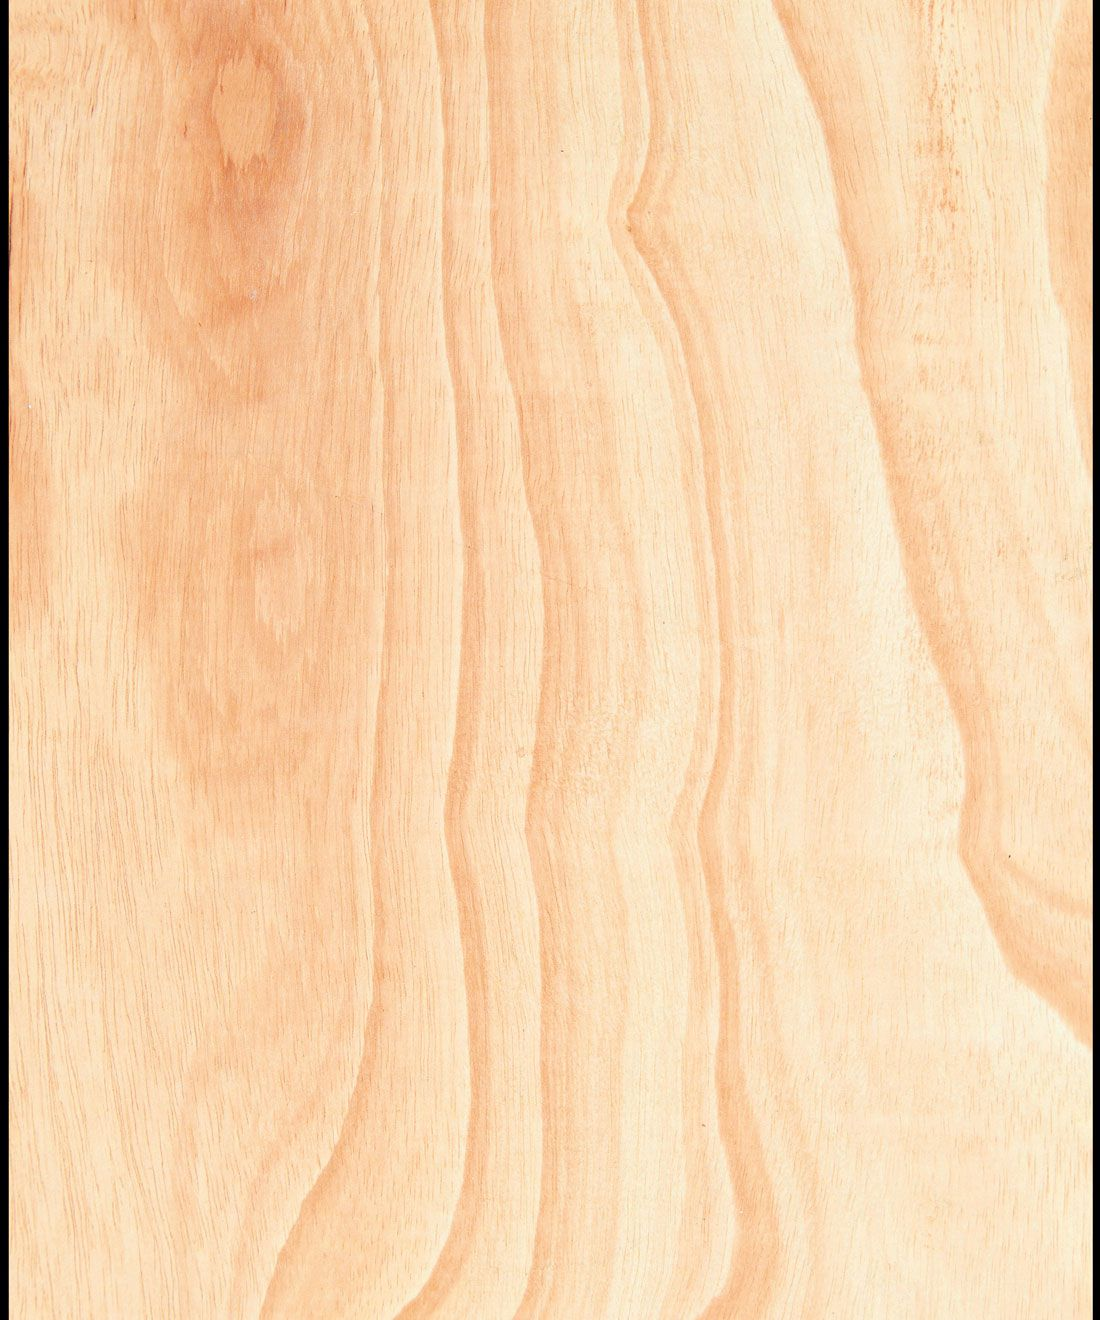 Ply Wood Wallpaper • Light Brown Wallpaper • Wood Grain Wallpaper Swatch